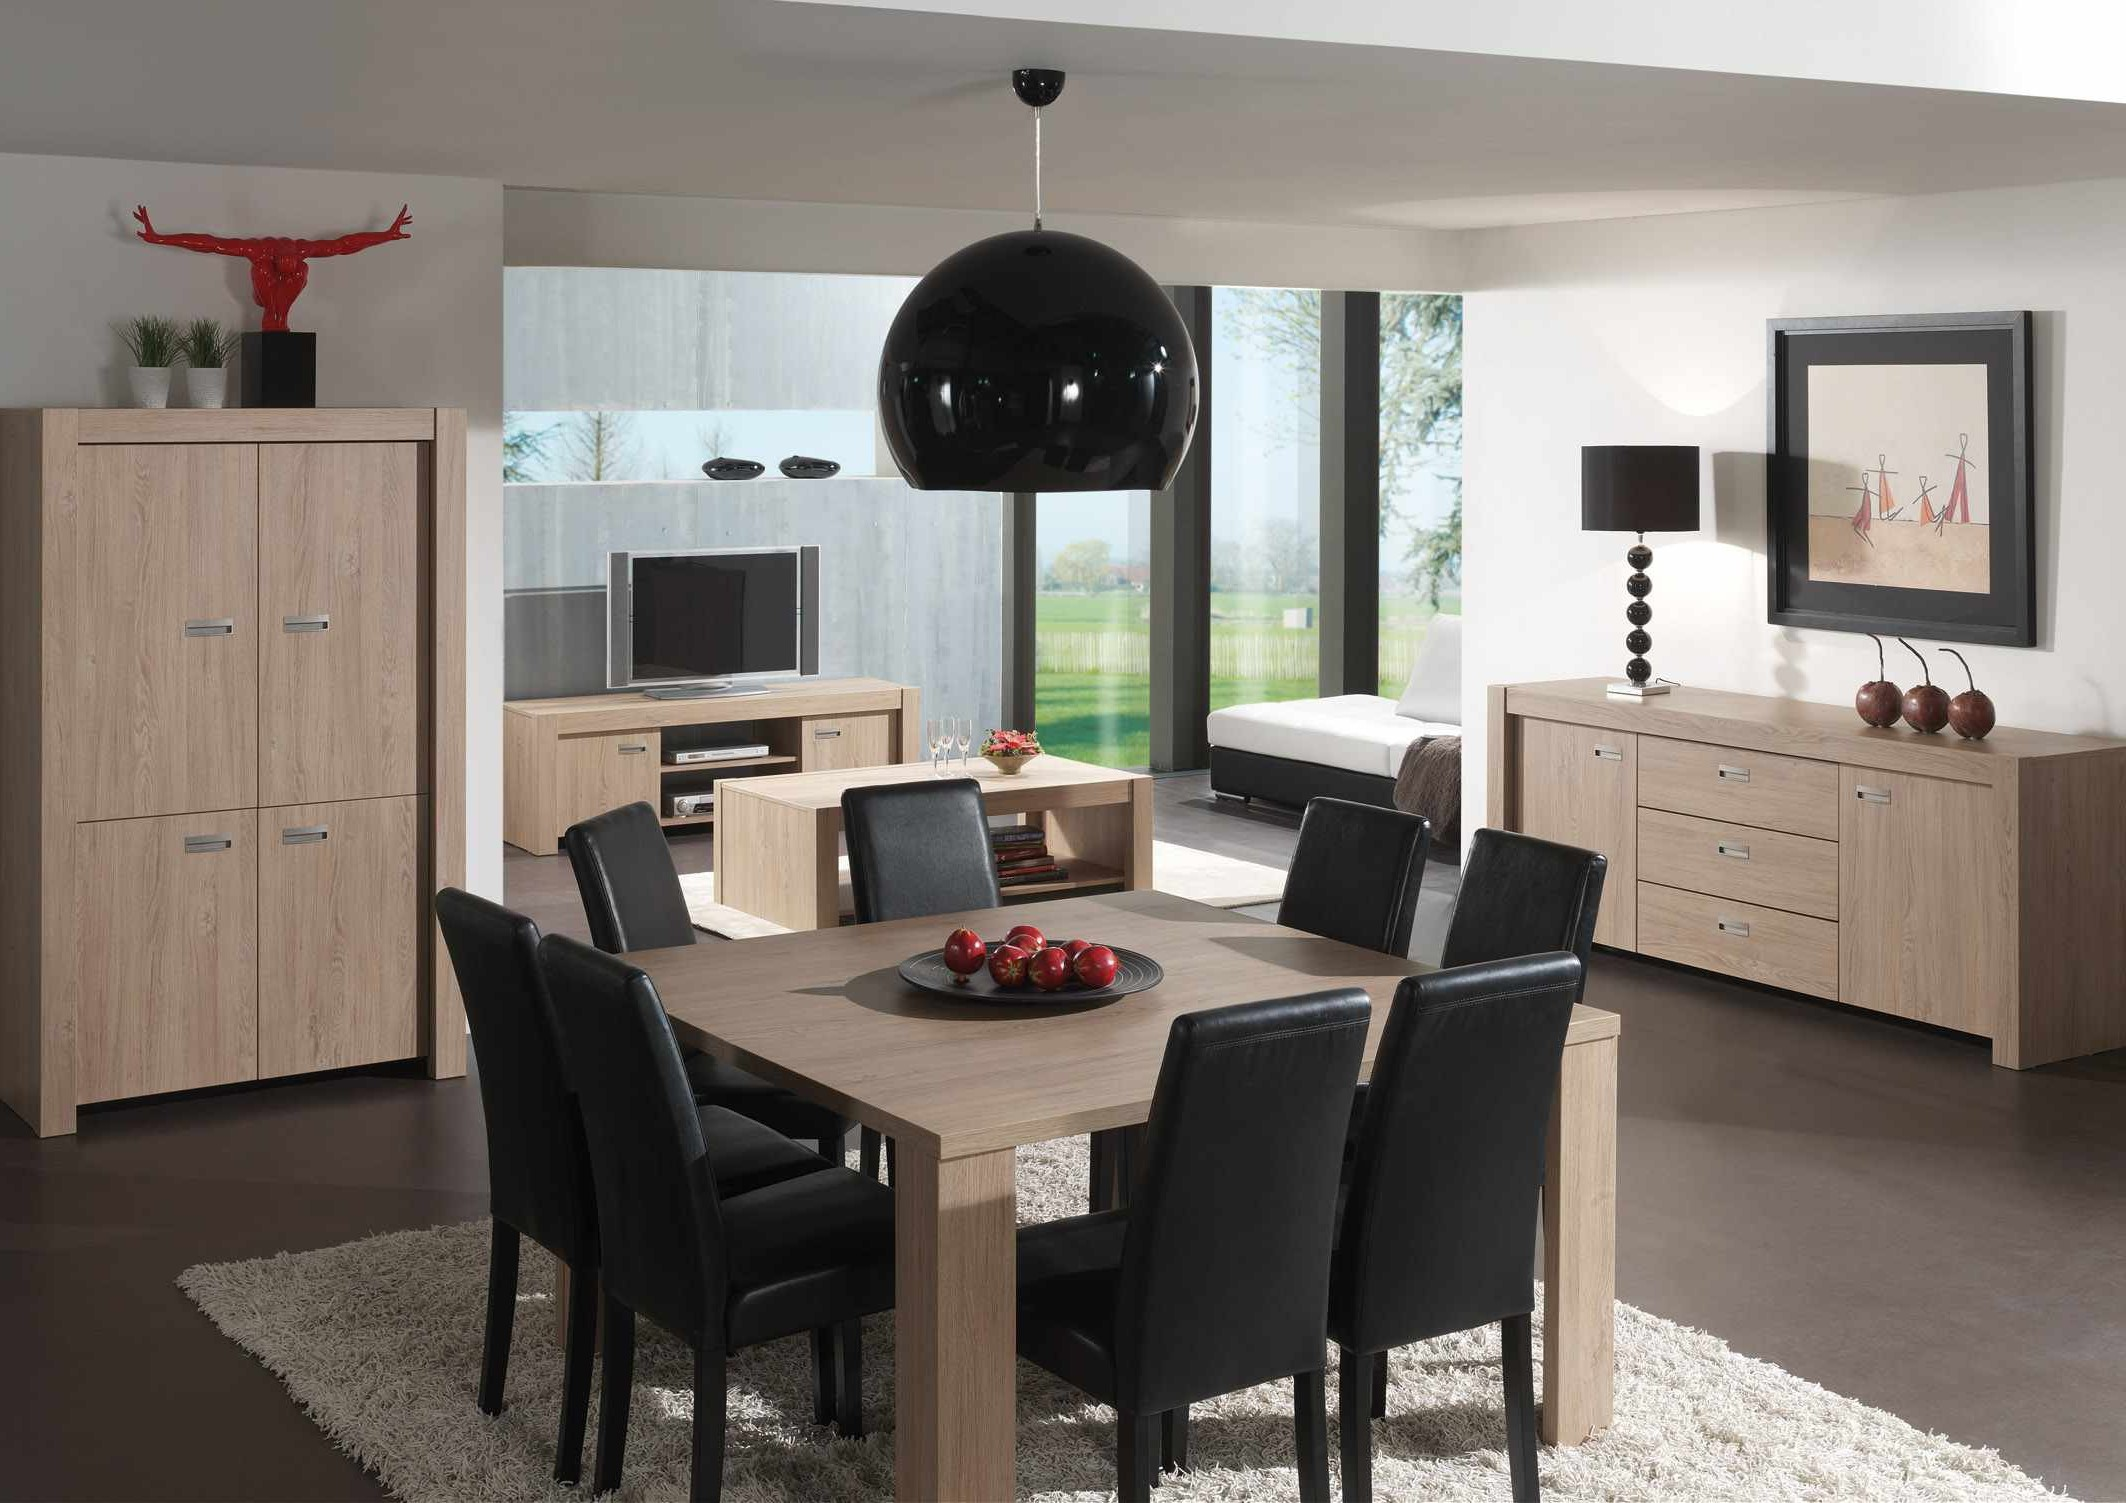 table chaise salle a manger pas cher with chaise salle a manger ikea. Black Bedroom Furniture Sets. Home Design Ideas